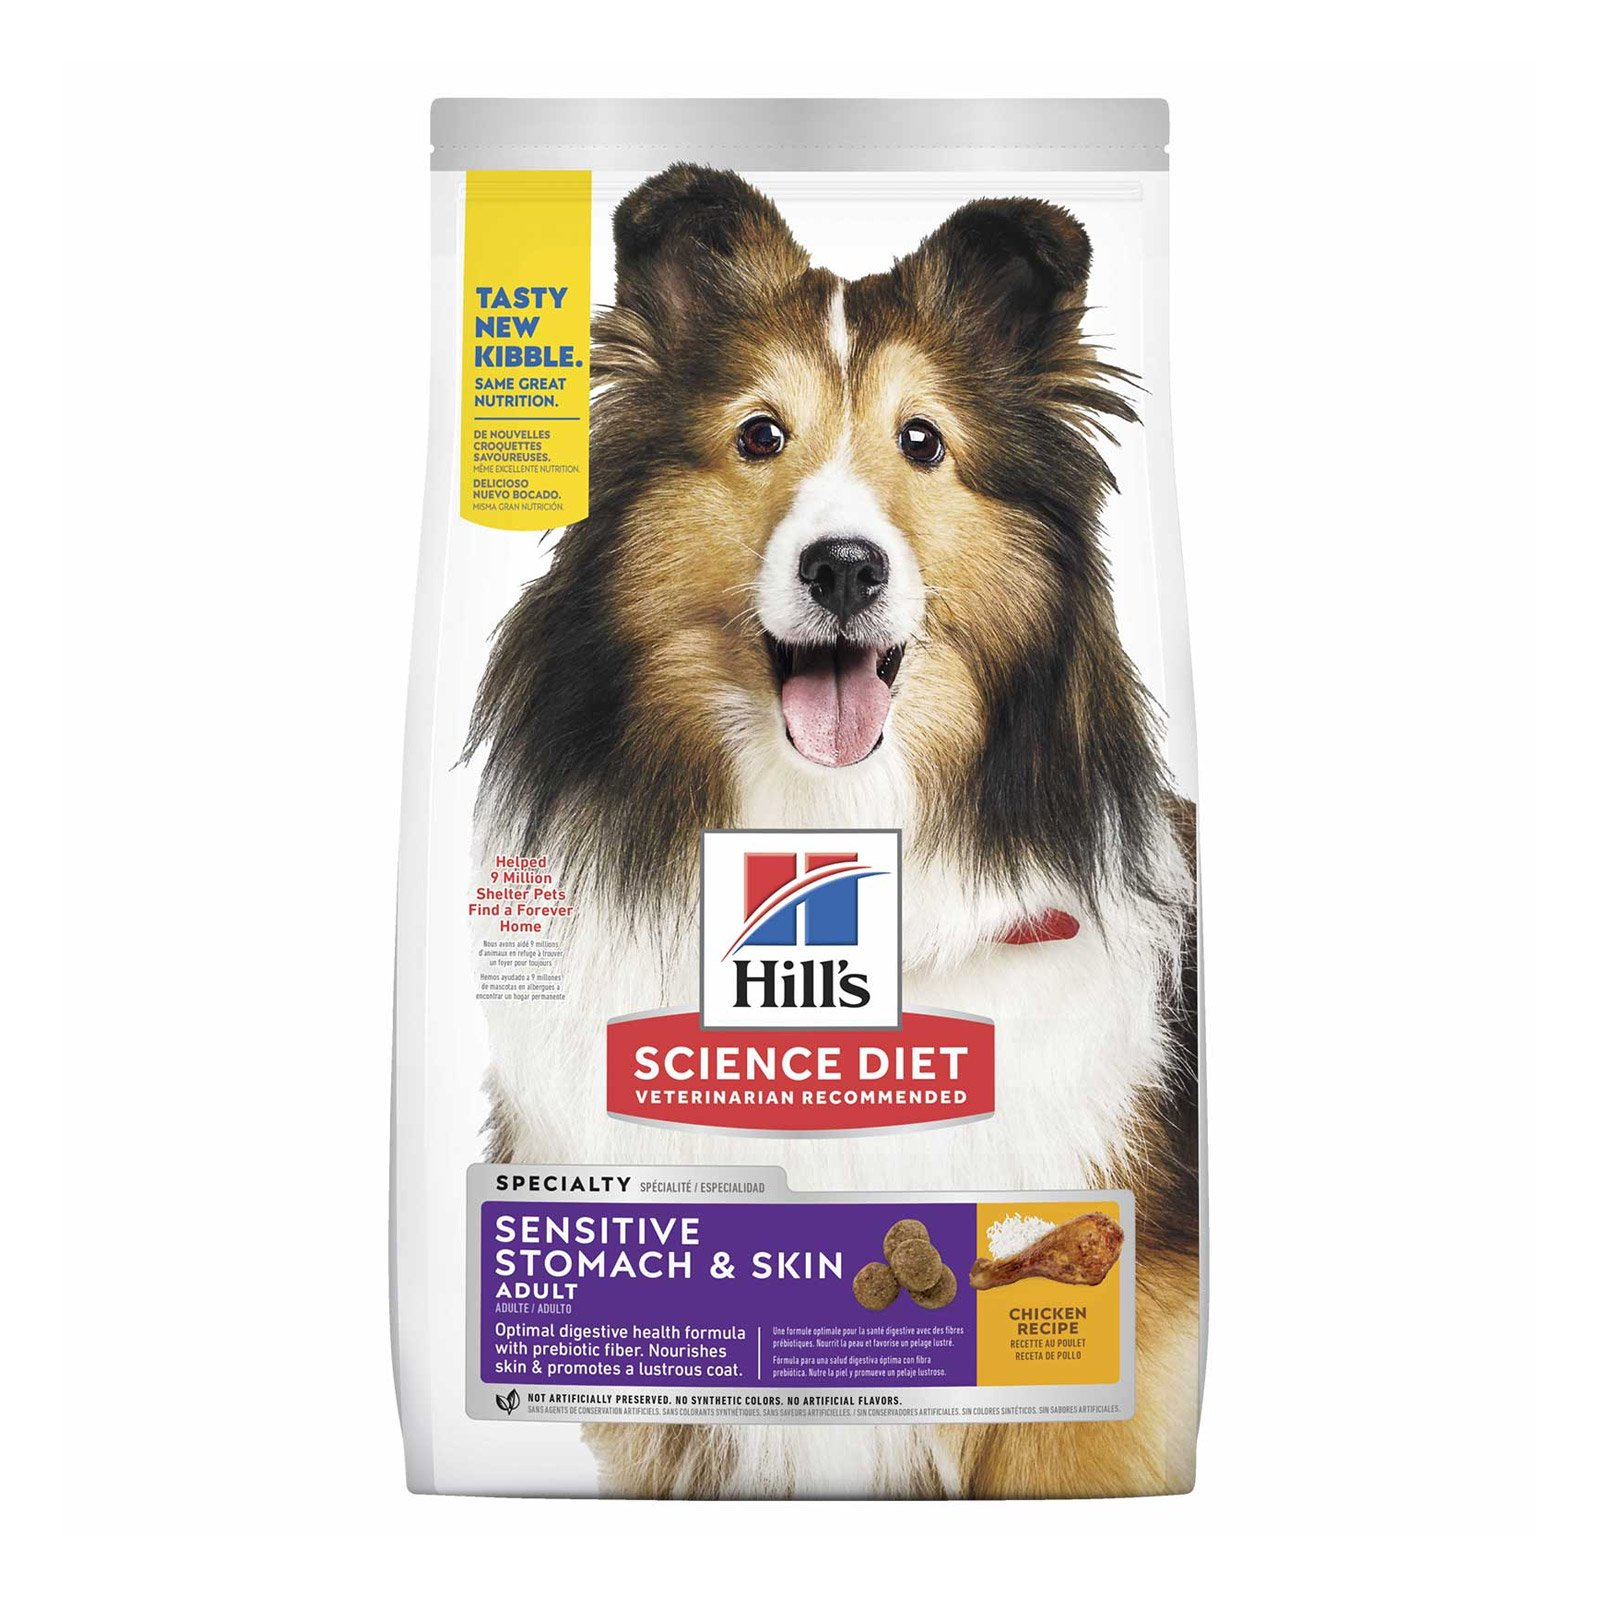 636951906156138701hill-s-science-diet-canine-adult-sensitive-stomach-and-skin.jpg